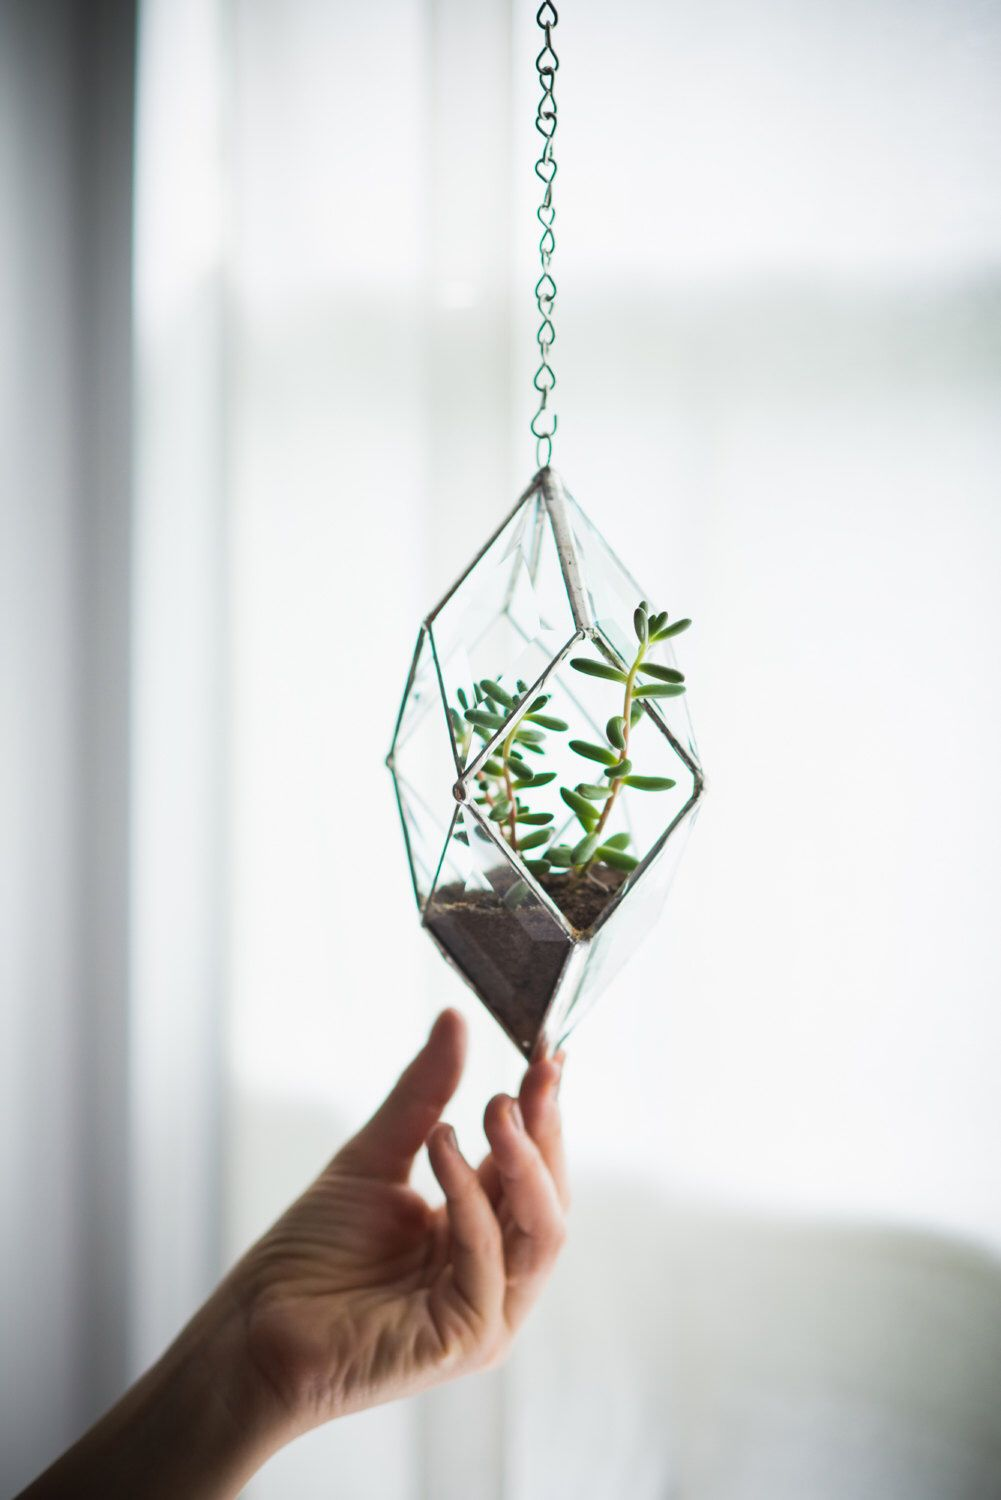 NEW Iridis Prism Terrarium, small -- for air plant terrarium or small succulent -- stained glass -- terrarium supplies -- eco friendly by ABJglassworks on Etsy https://www.etsy.com/listing/201937768/new-iridis-prism-terrarium-small-for-air